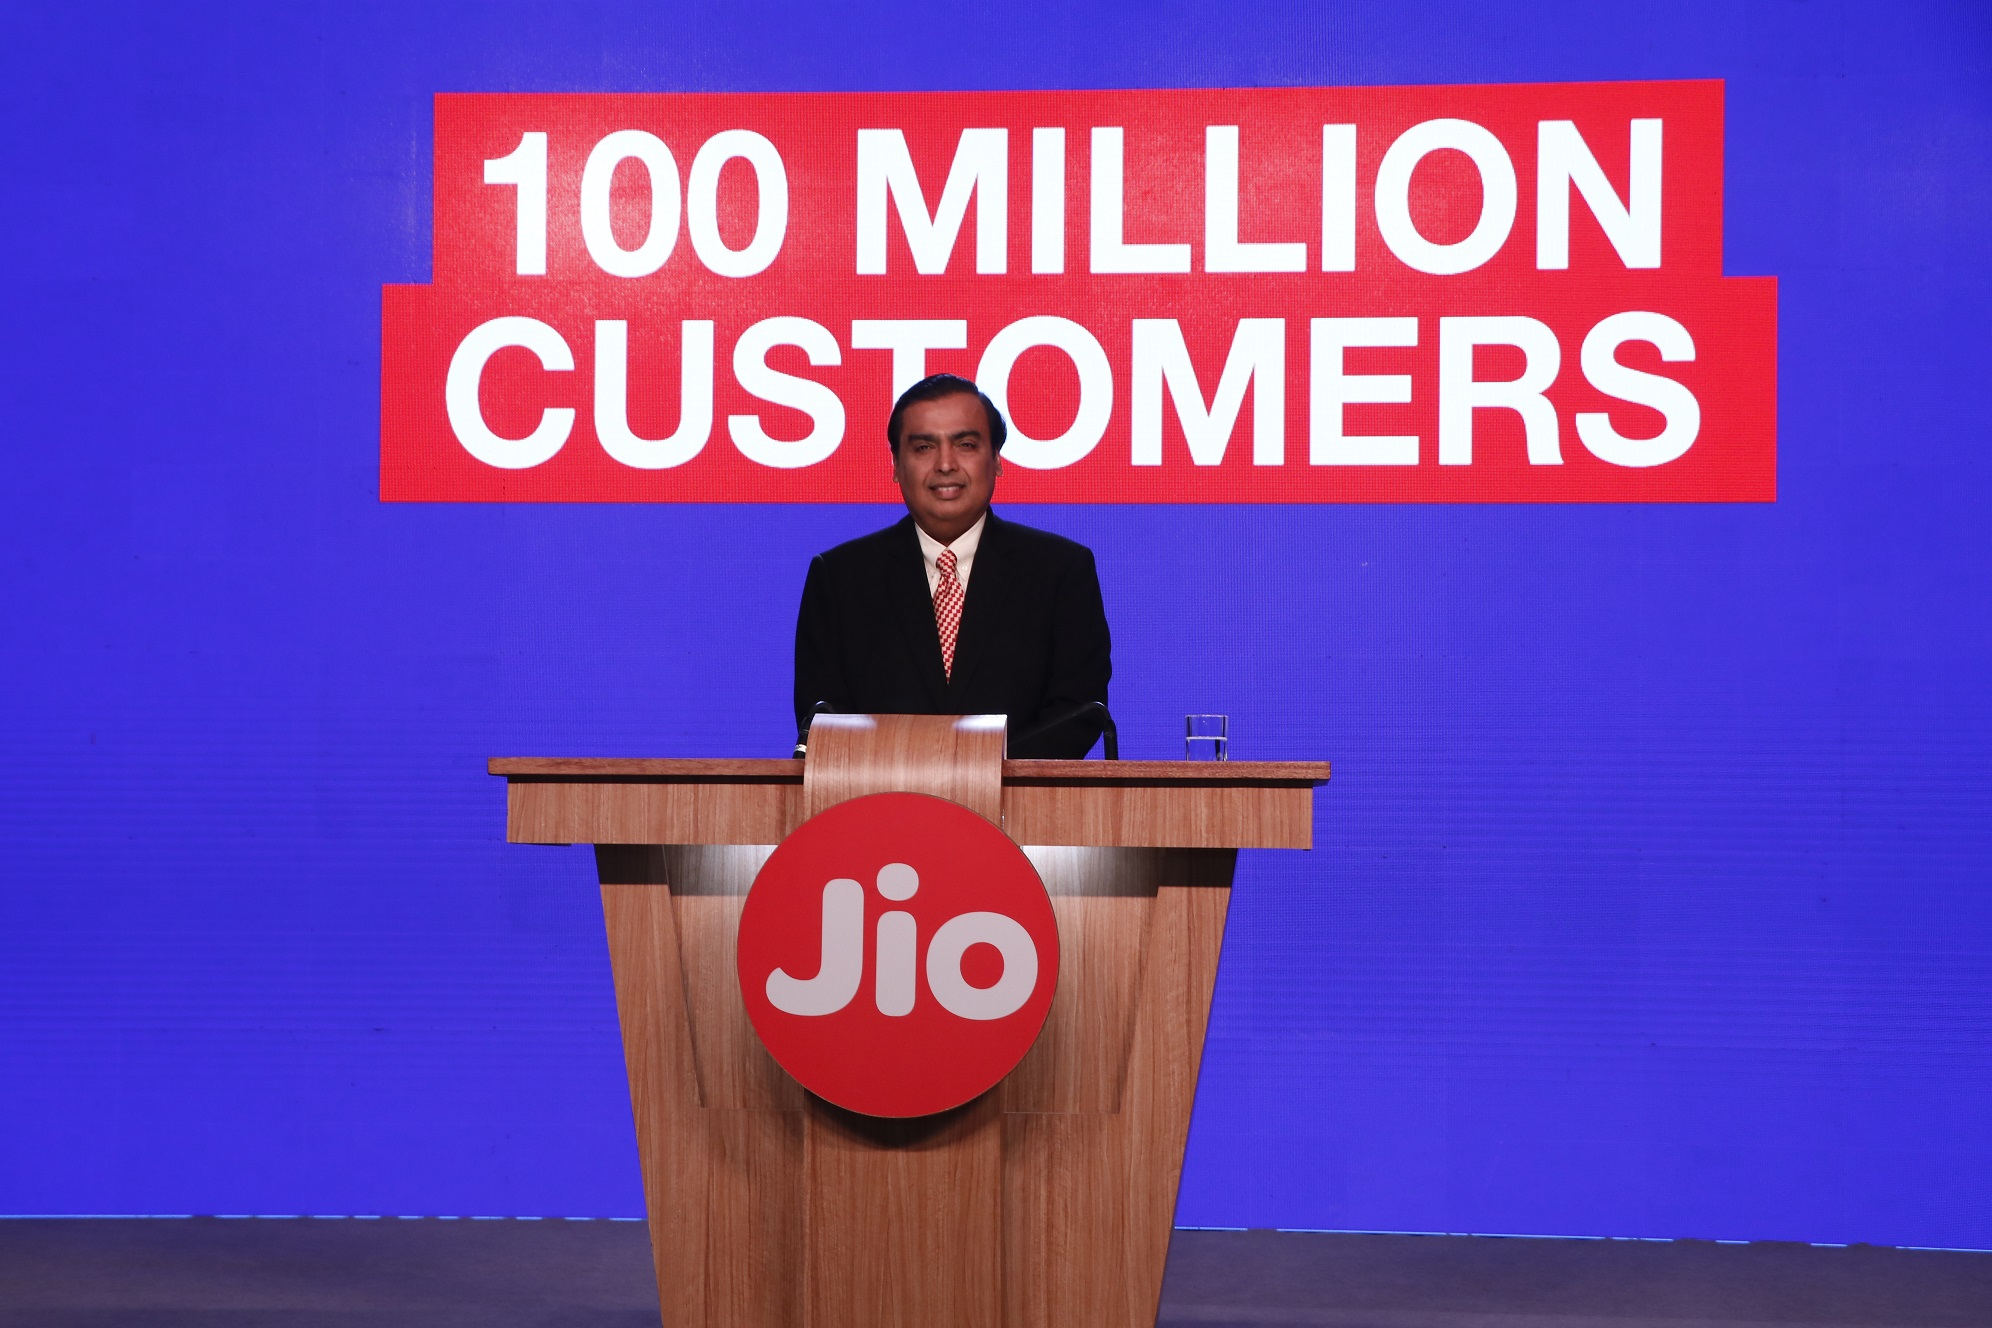 On cheap data and freebies, Mukesh Ambani's Reliance Jio forced its way into the telecom market last year and scared the incumbent, eating into their subscriber base and revenue. Now its JioPhone is likely to emerge as a strong challenger of mobile phone operating systems. That's due to the operating system KaiOS that powers JioPhone taking over iOS in India and becoming the No. 2 operating.